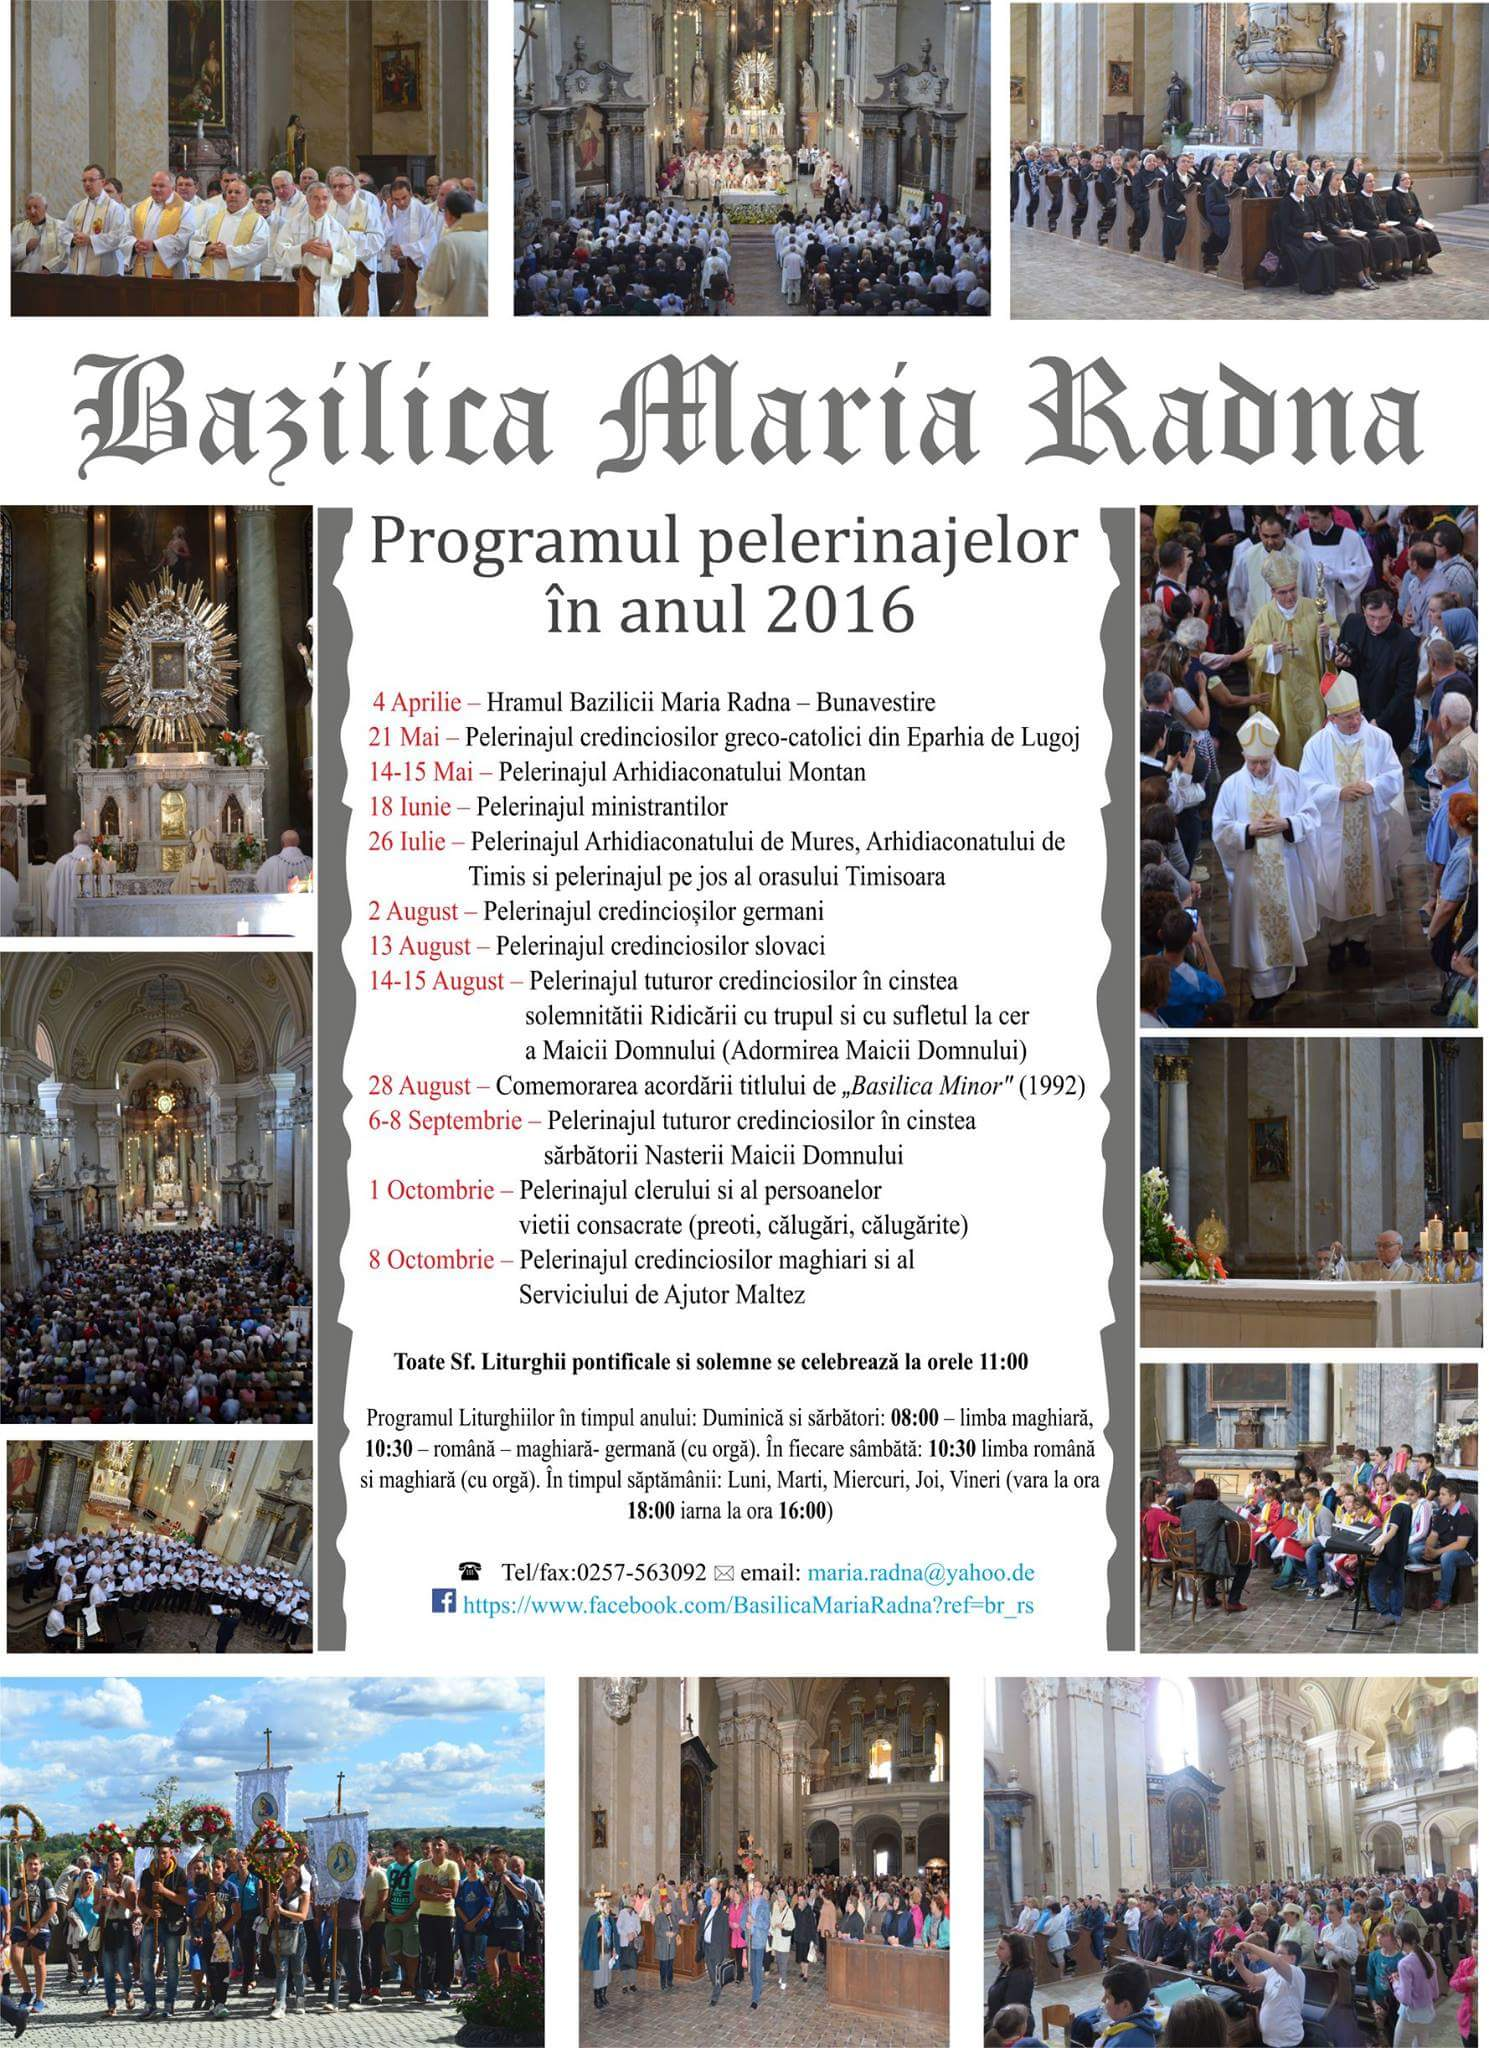 PROGRAM AN 2016 BASILICA MARIA RADNA